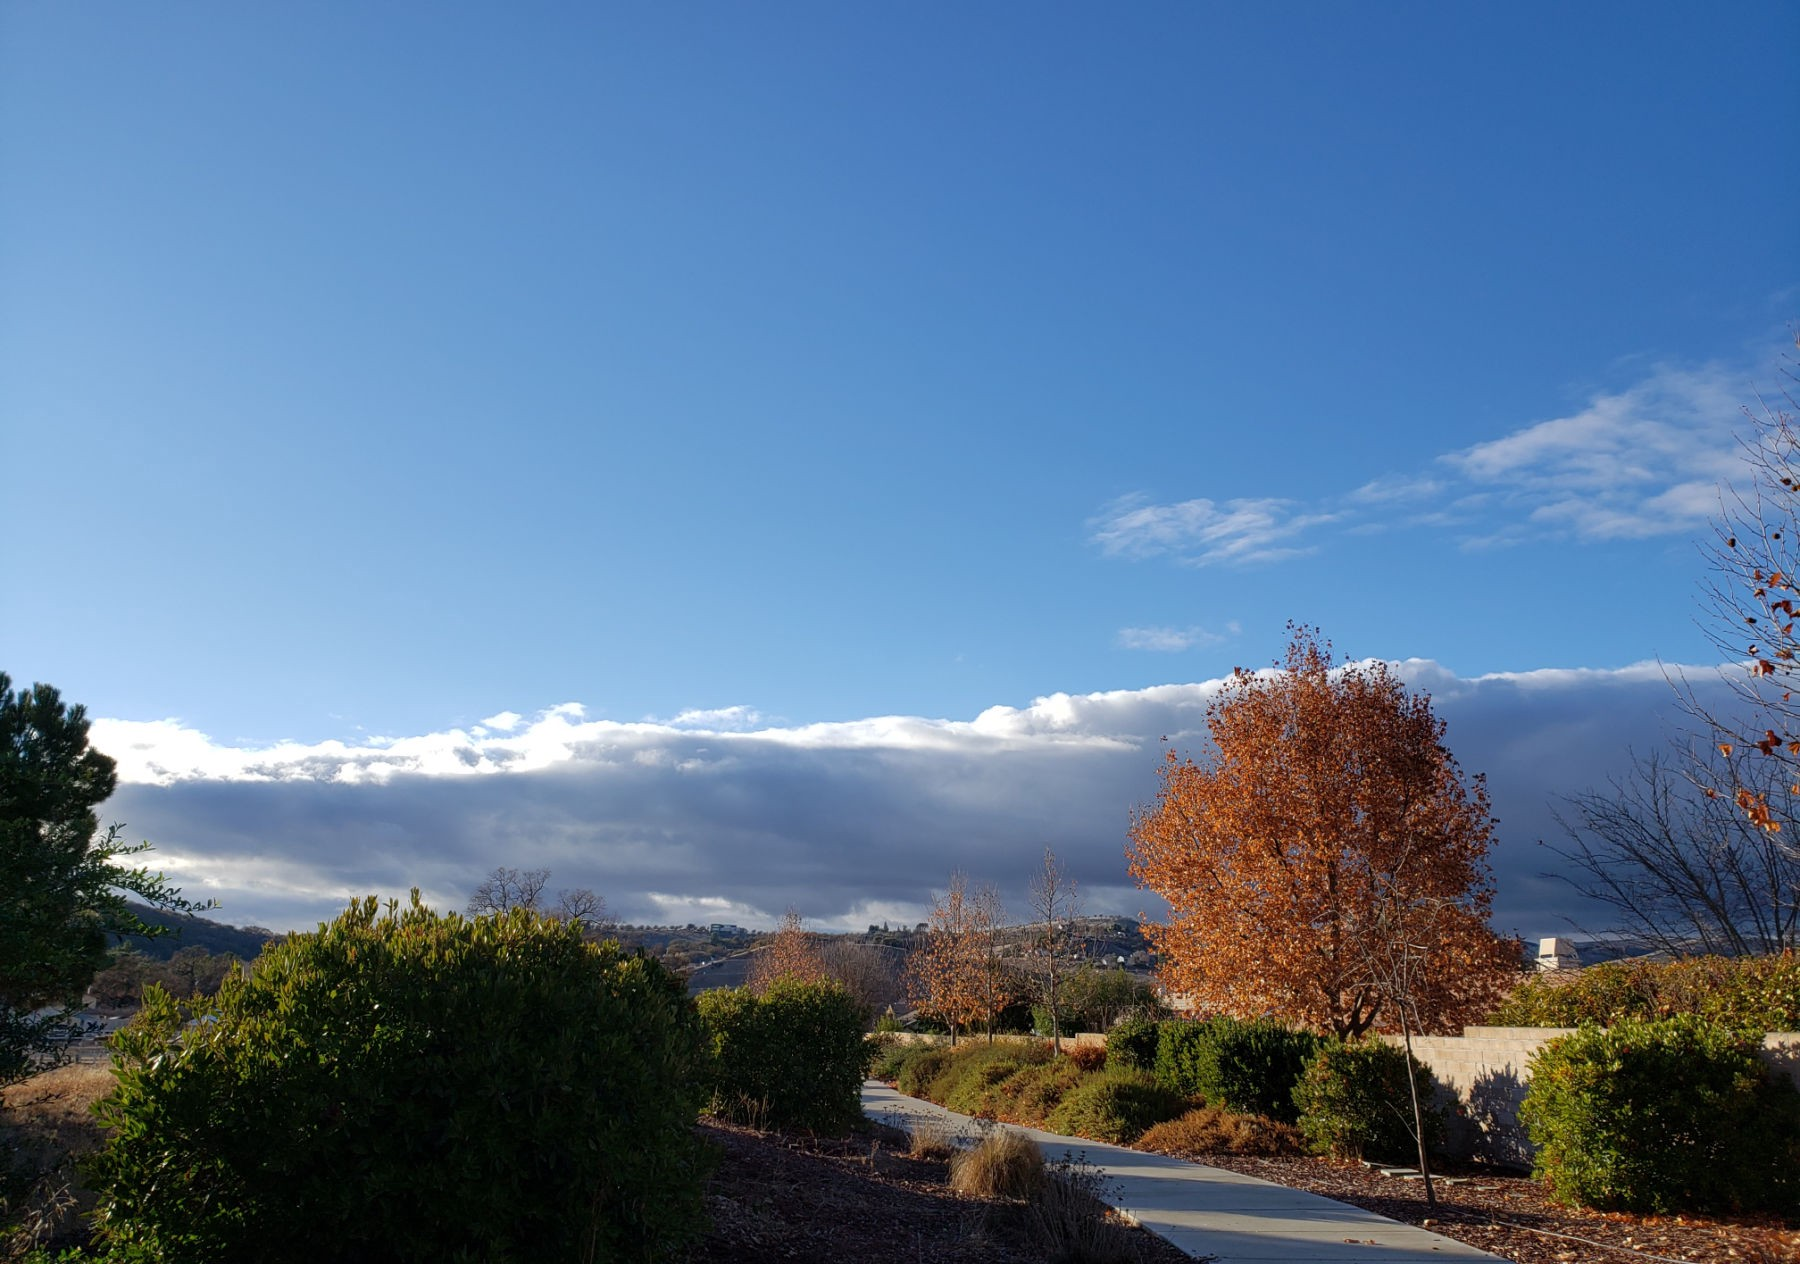 Shadows Across the Charolais Corridor Trail in Paso Robles, California with a long gray thundercloud